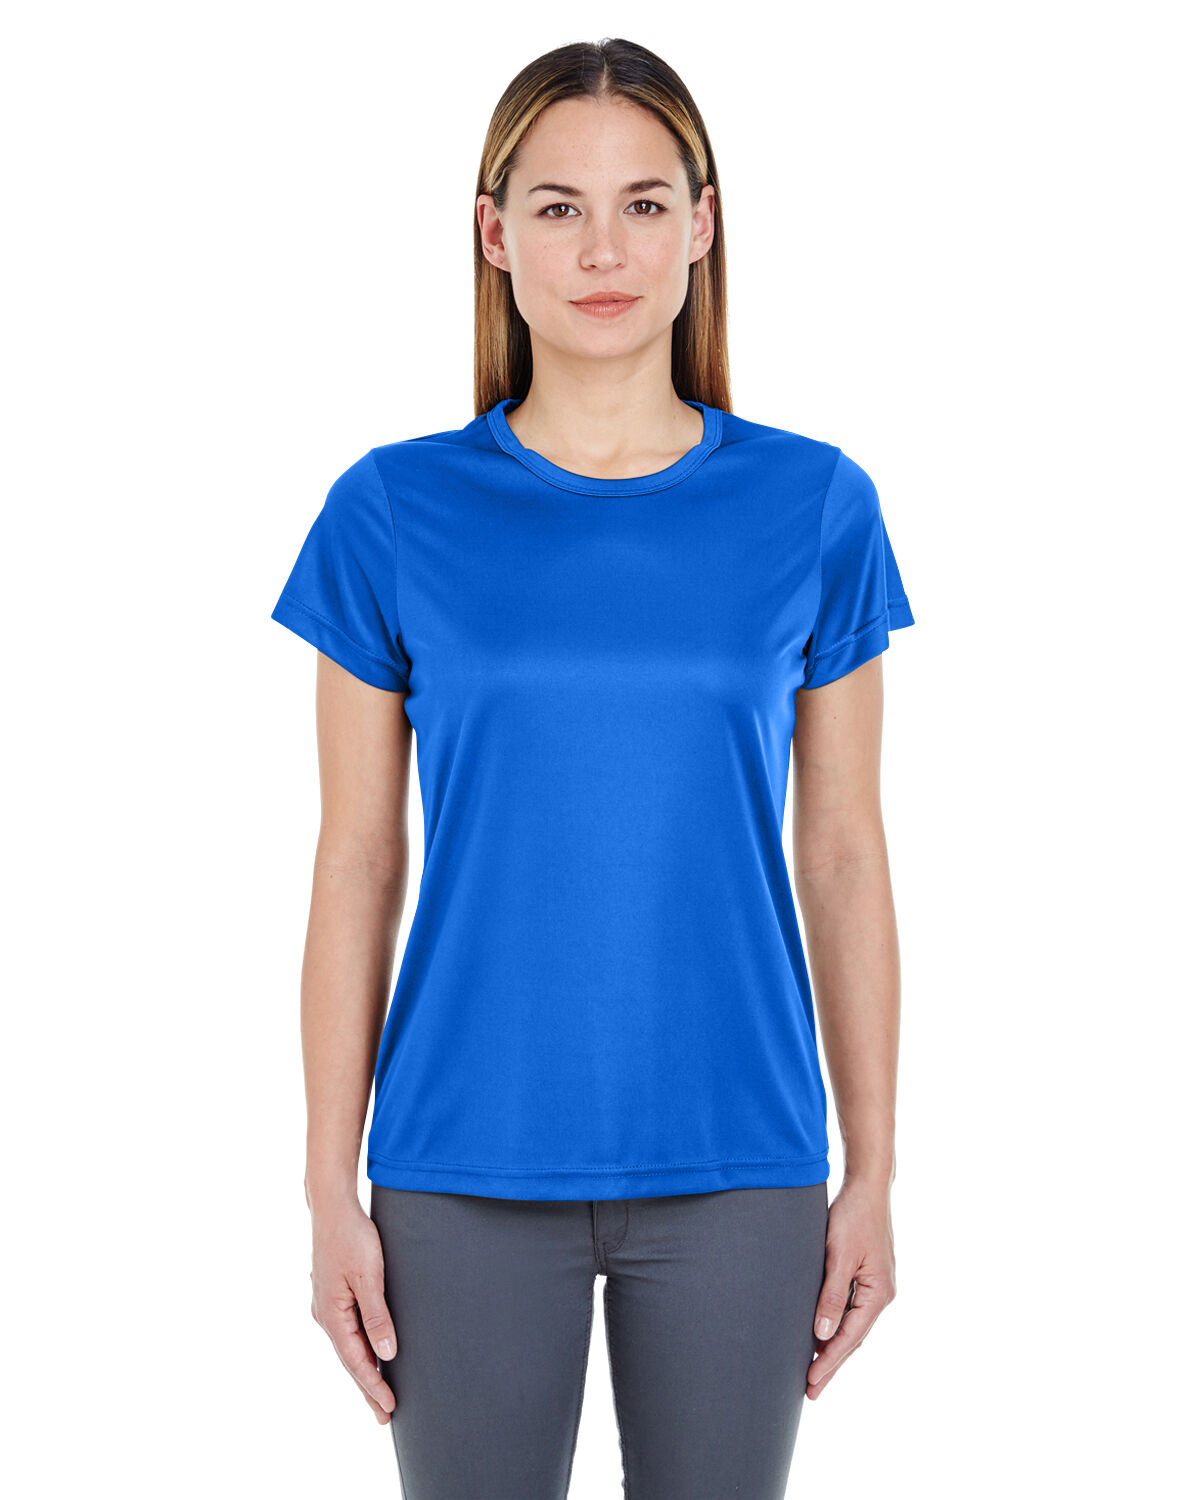 UltraClubs Womens Ultc-8610l-cool /& Dry 8 Star Elite Perfo